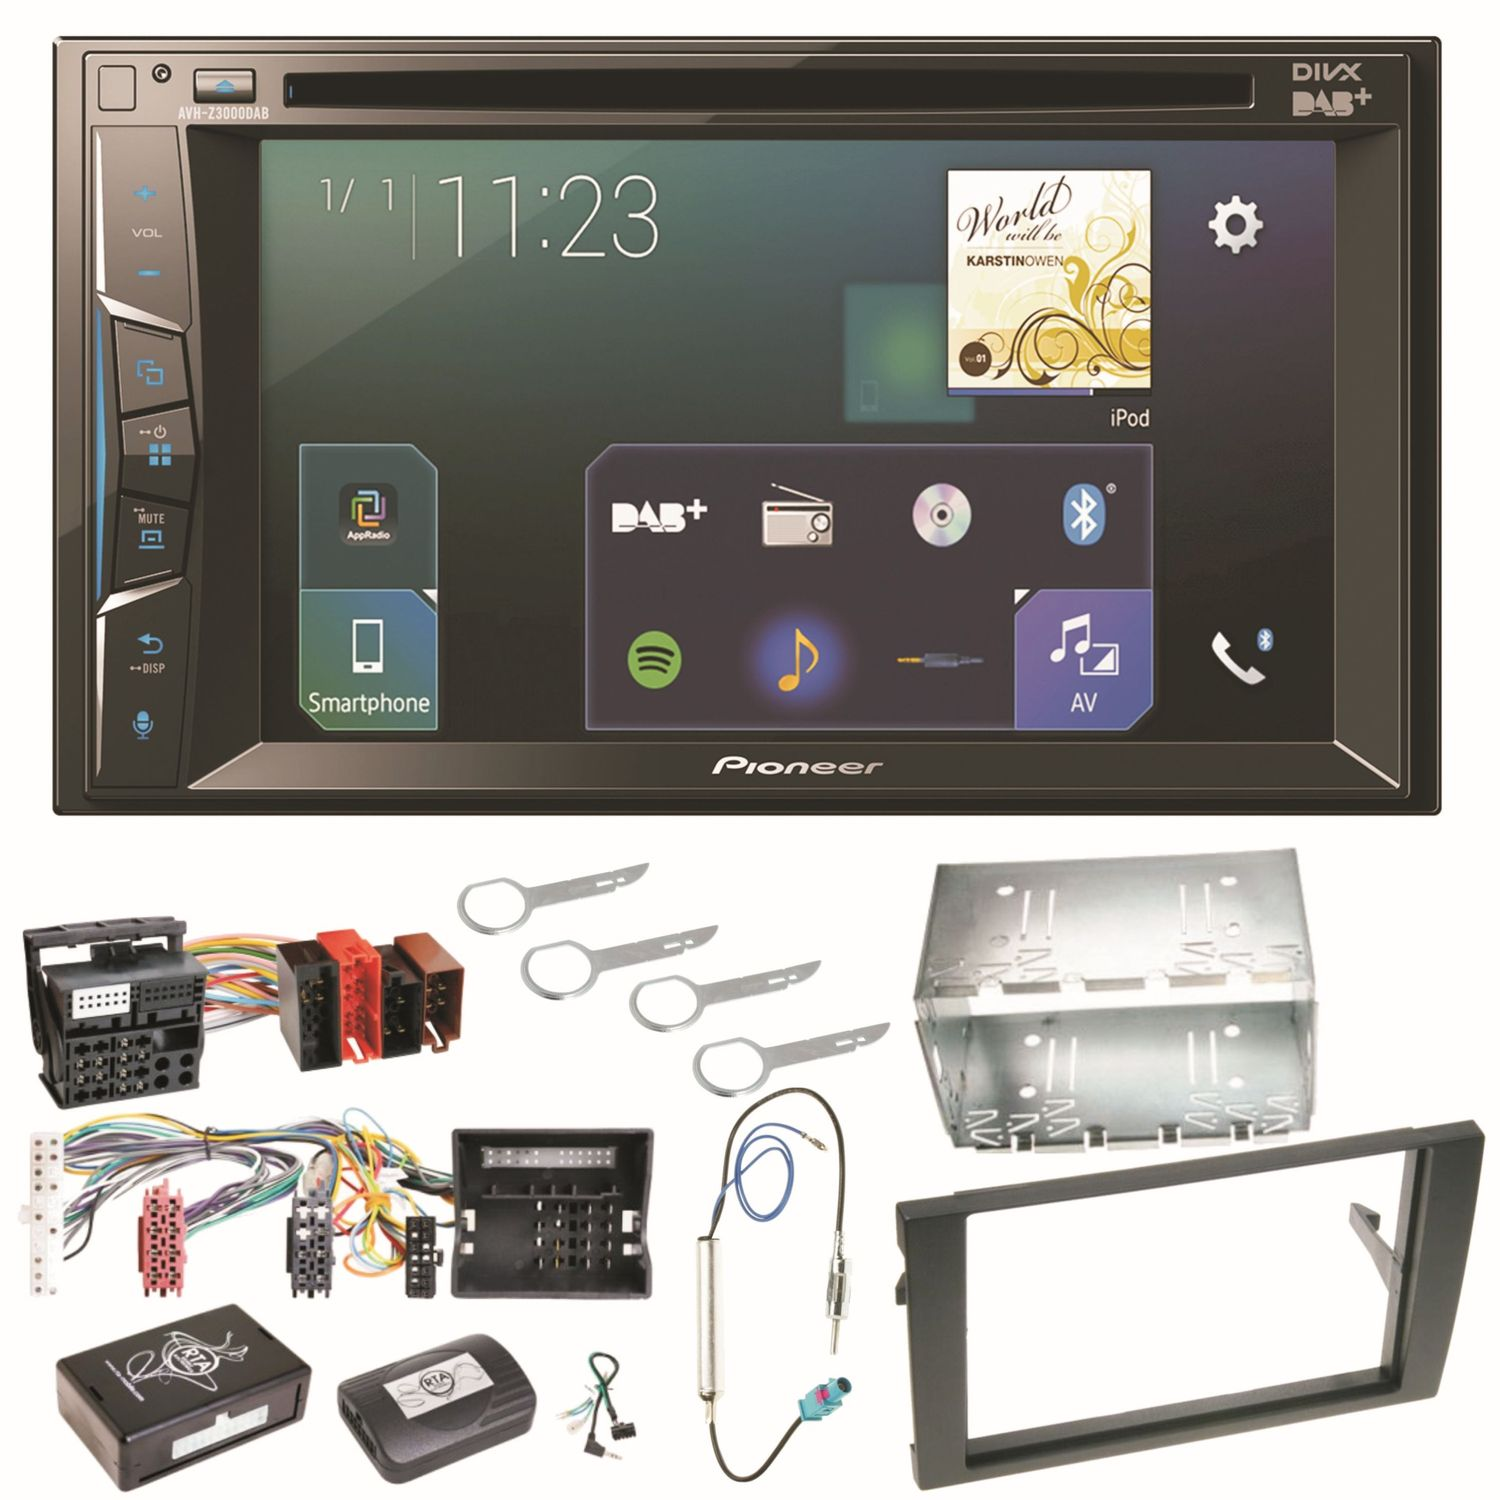 Pioneer AVH-Z3000DAB Carplay Autoradio Digitalradio Einbauset für ...